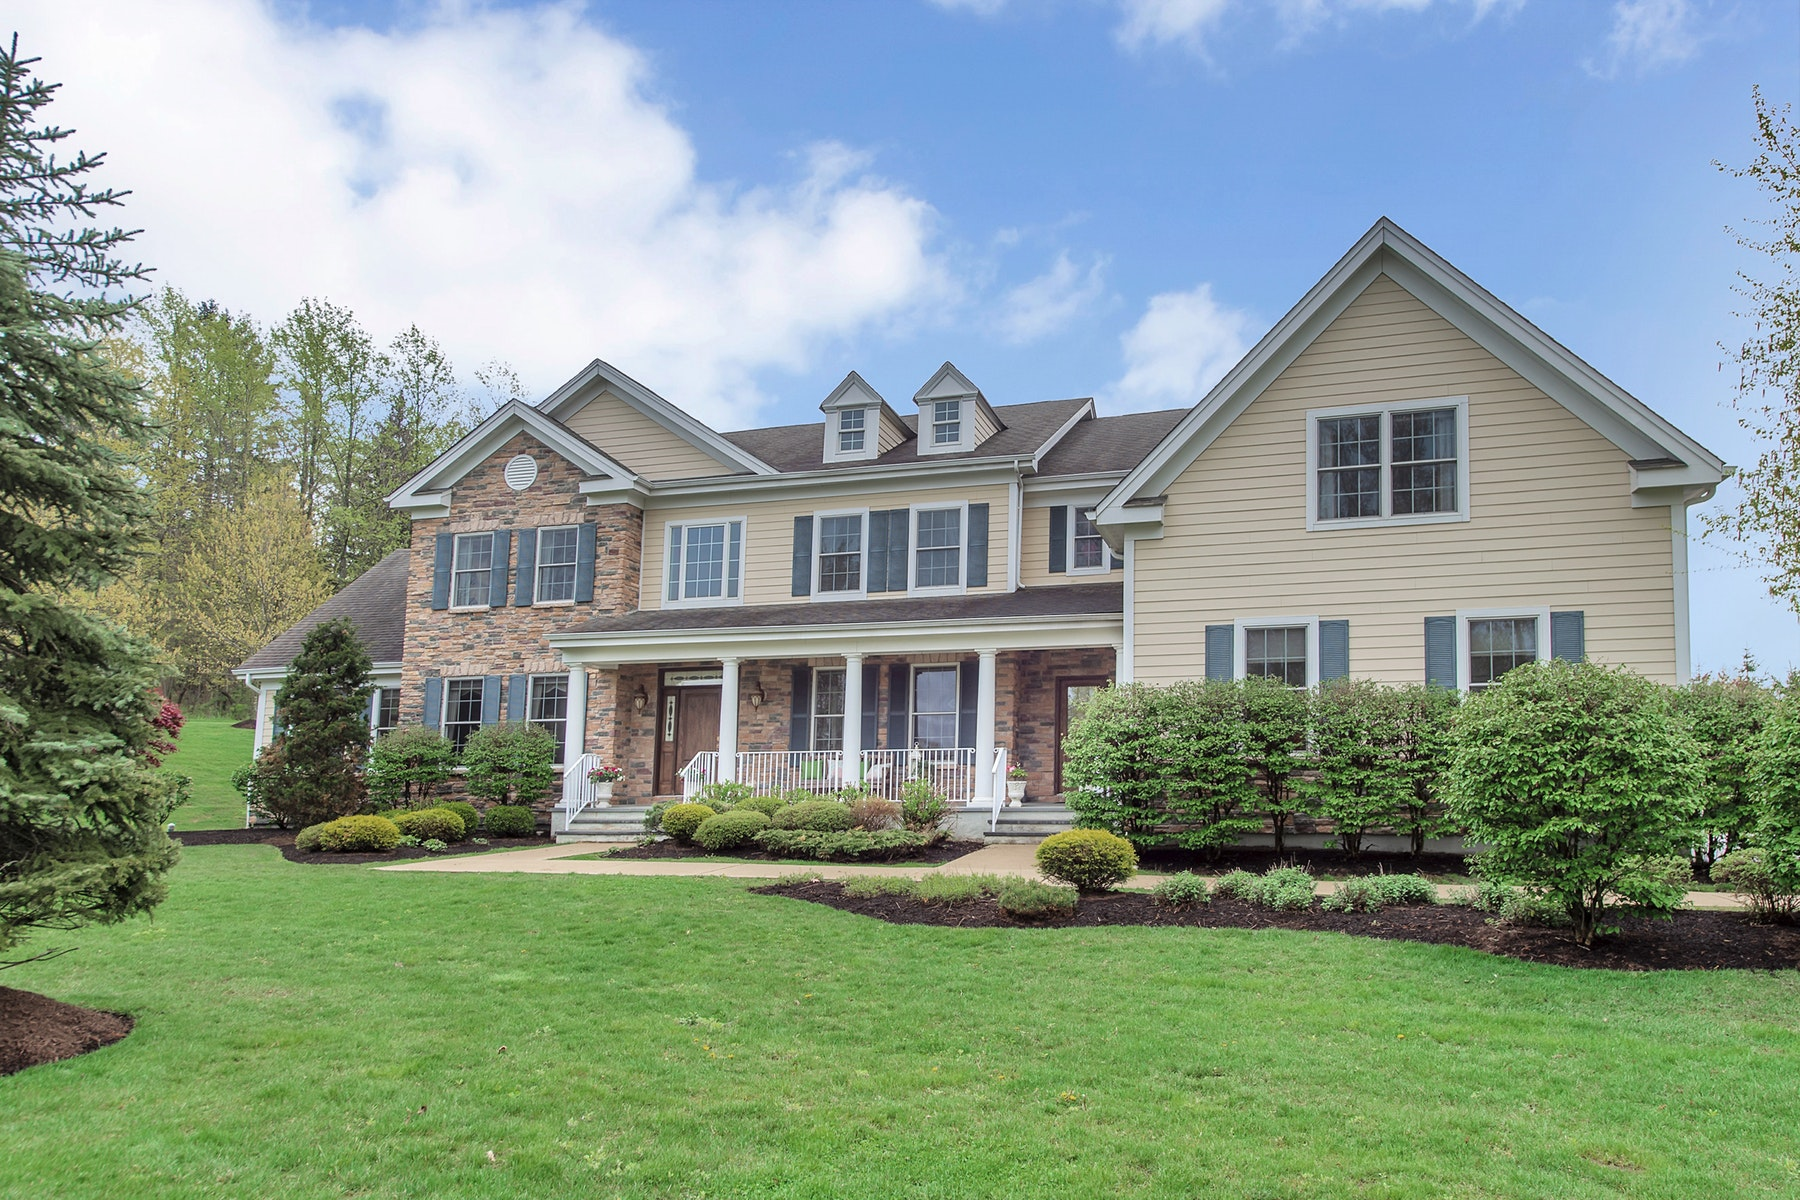 Single Family Homes for Sale at Exceptional in Every Way 18 Arbor Road North Caldwell, New Jersey 07006 United States